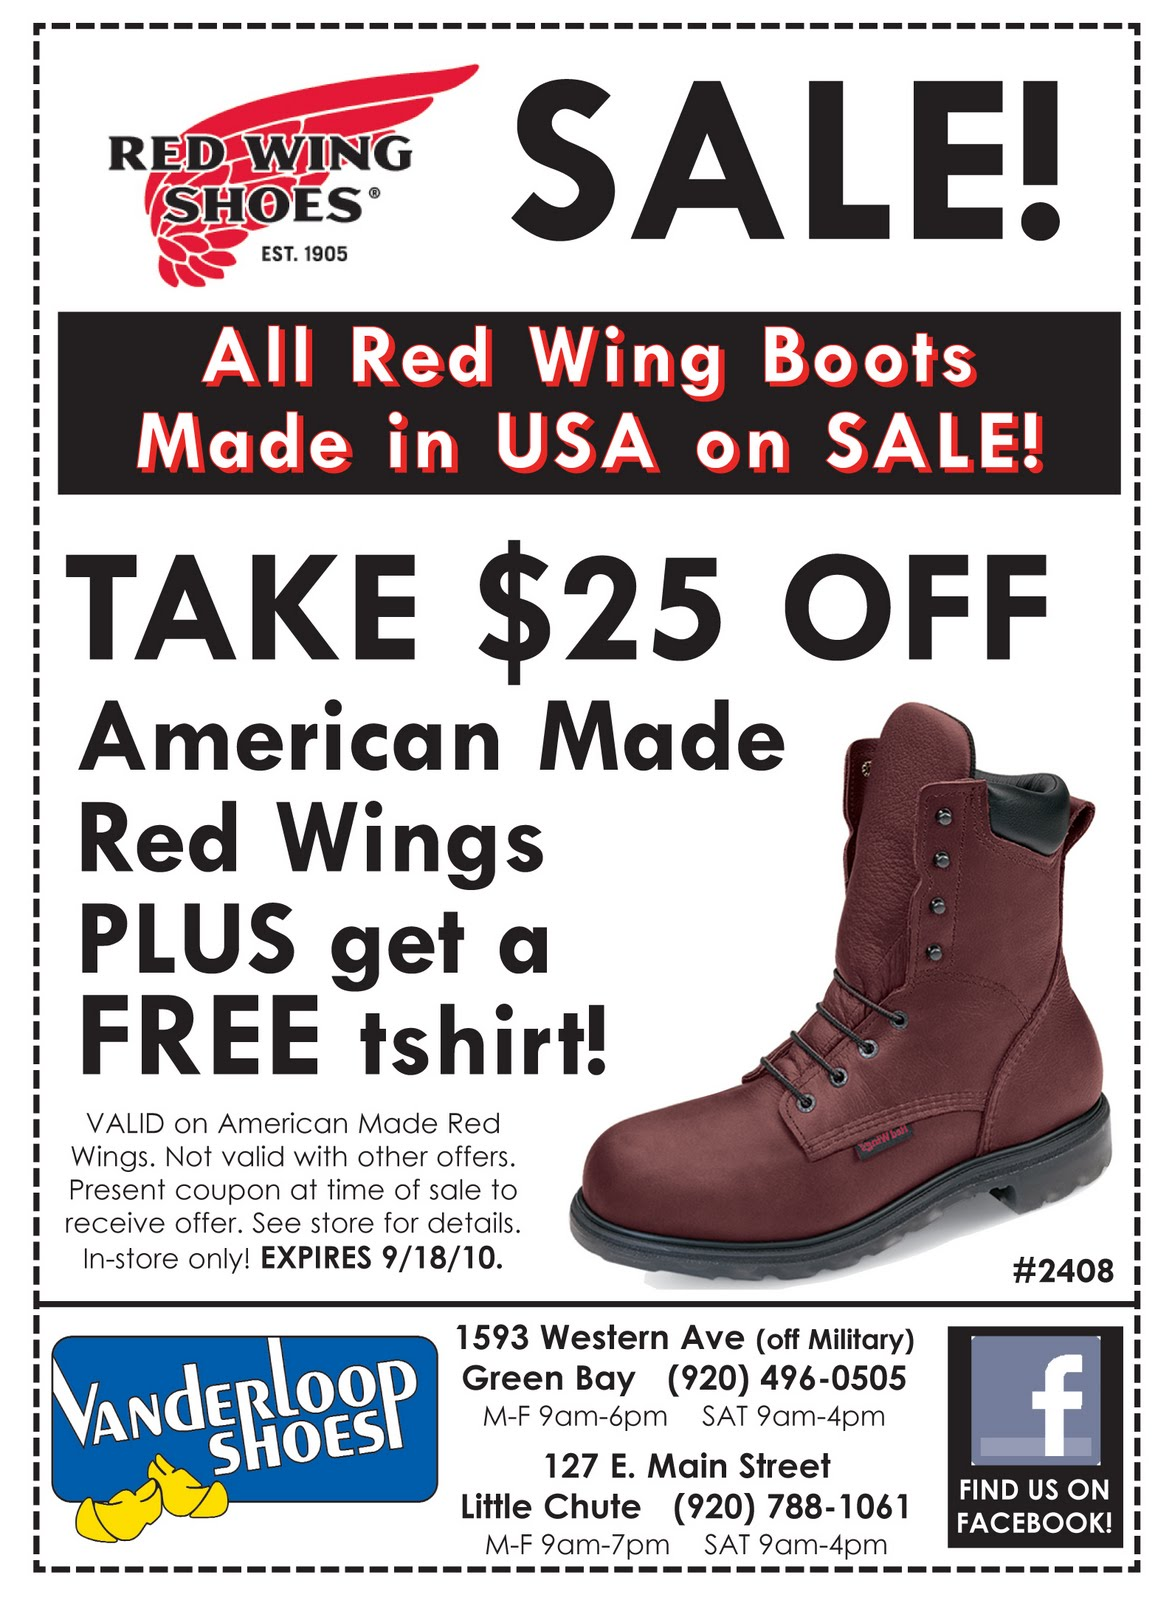 Red wing shoes coupon - Gordmans coupon code